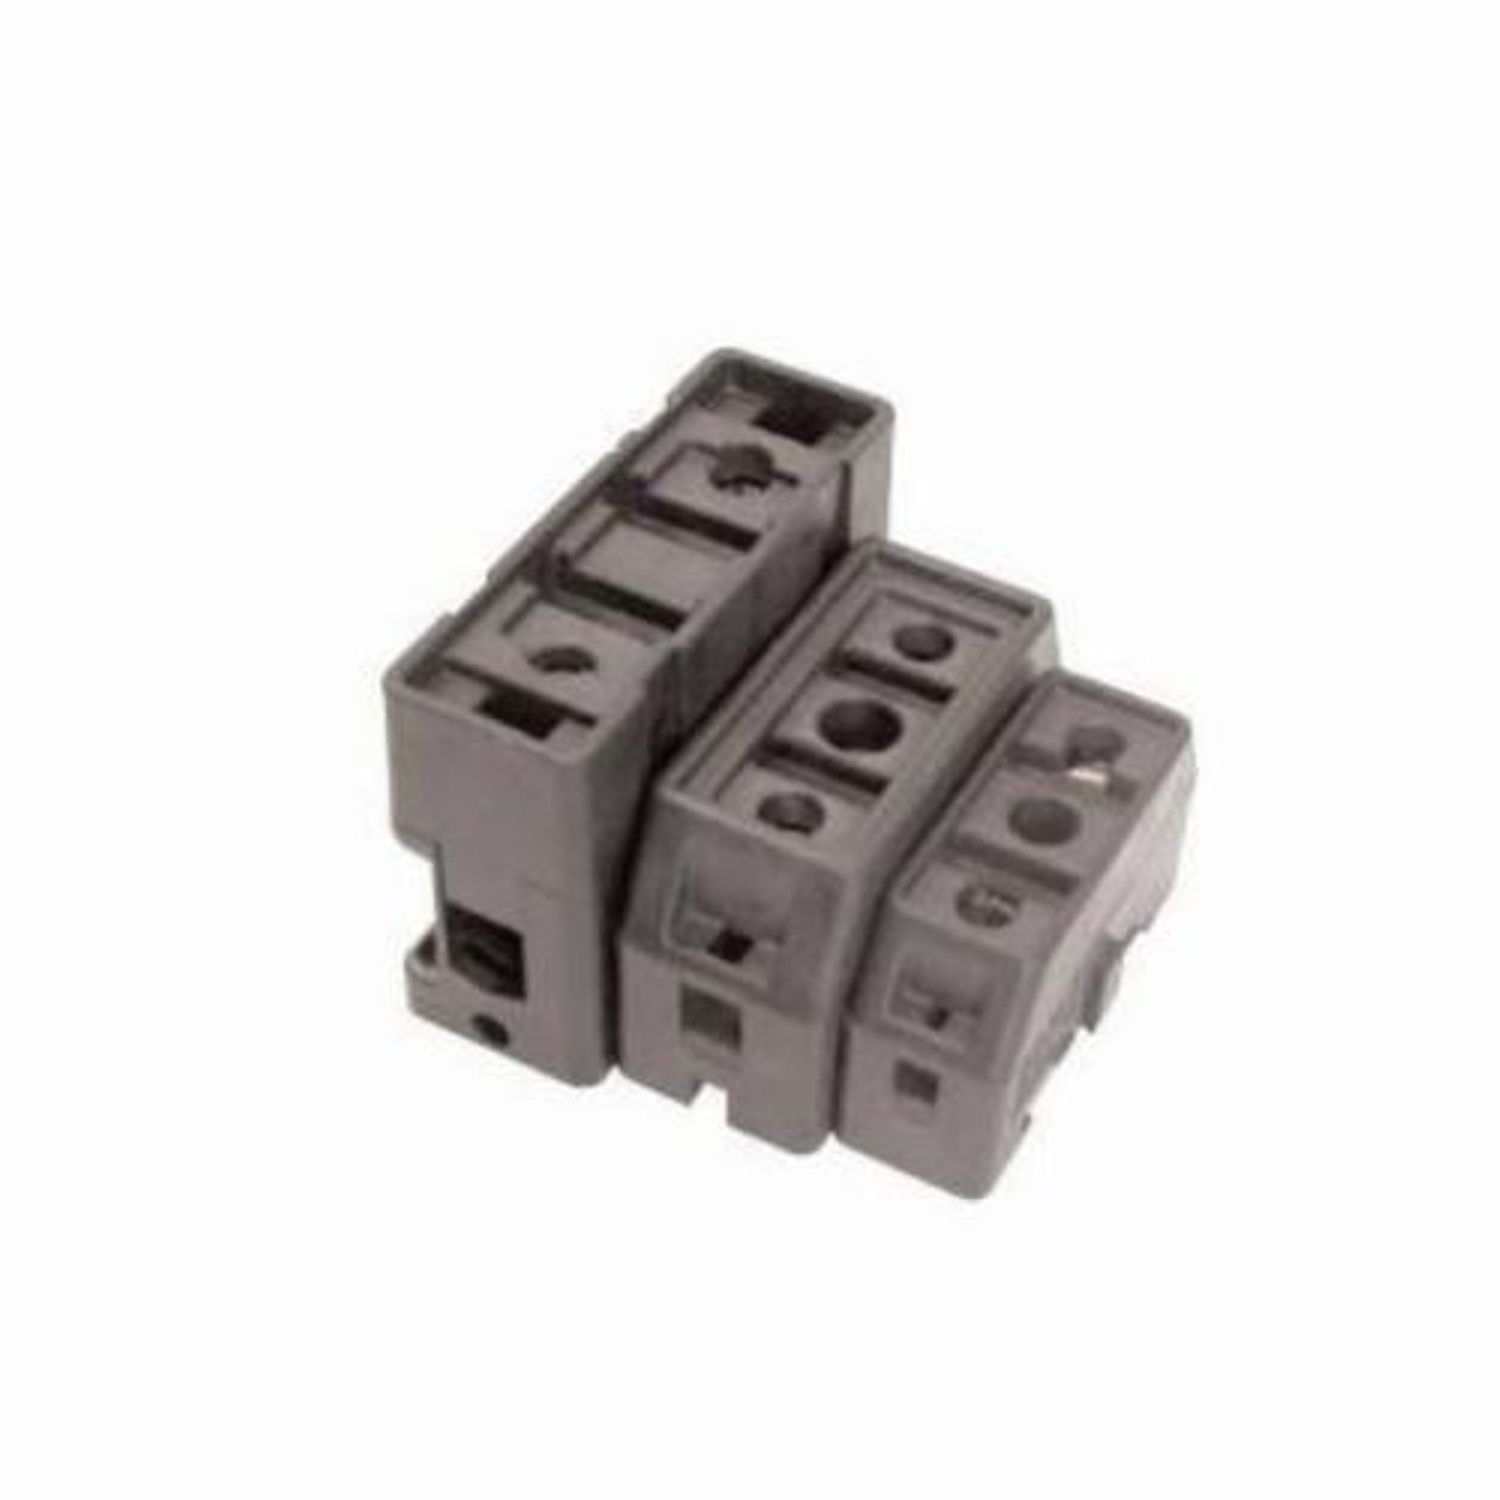 Bussmann Tcfh Cube Fuse Holder 600 Vac Vdc 1 To 100 A 18 Box Awg 6 Wire Pole